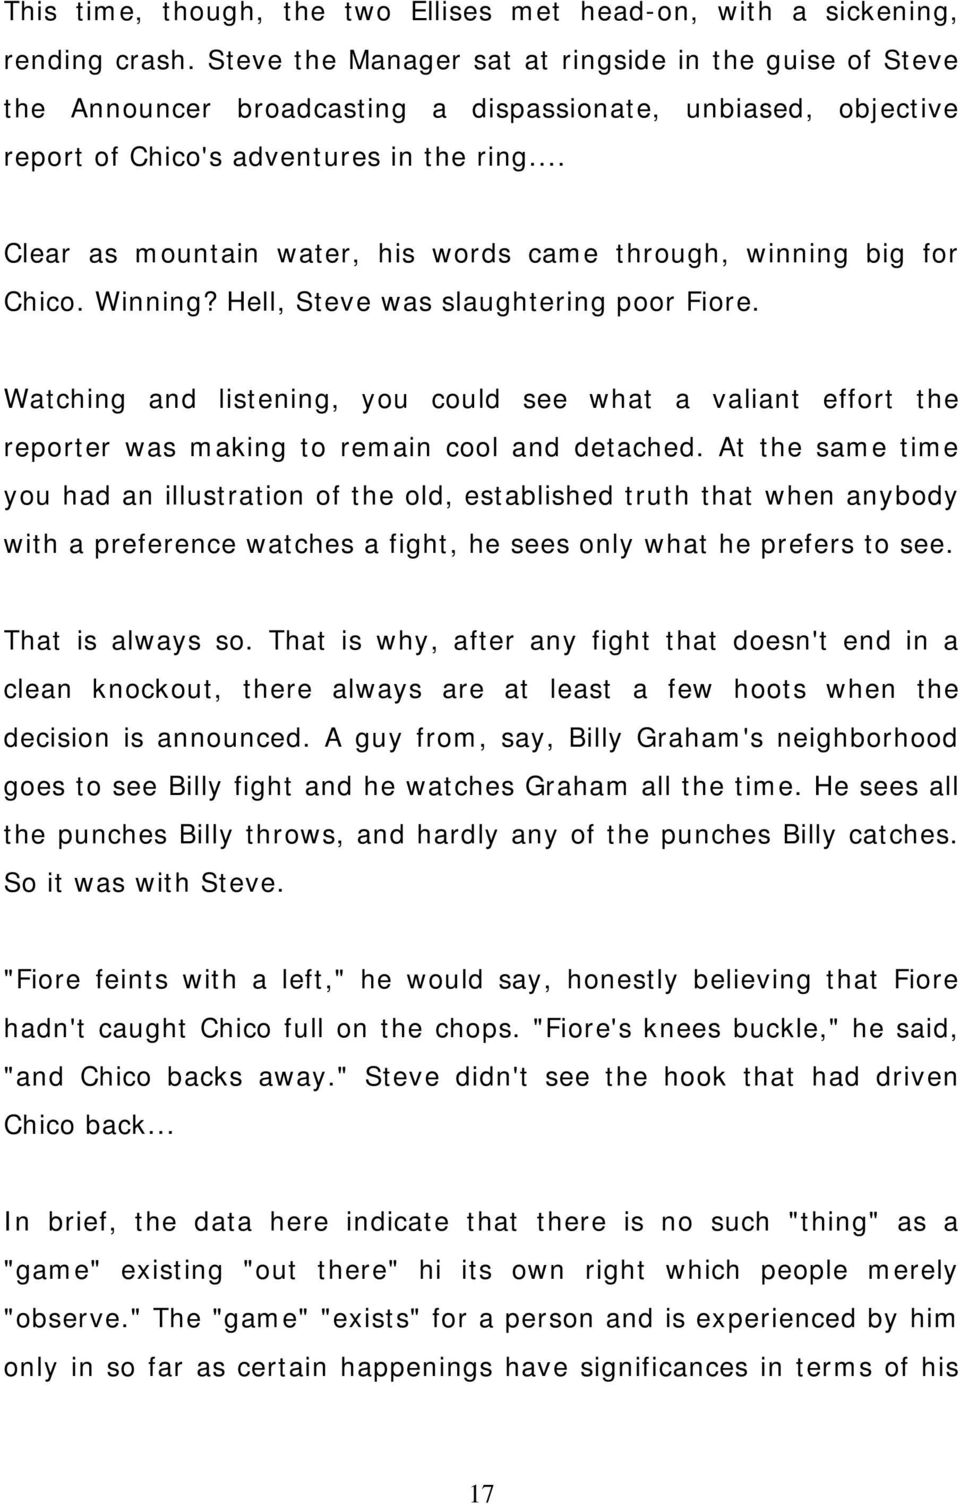 .. Clear as mountain water, his words came through, winning big for Chico. Winning? Hell, Steve was slaughtering poor Fiore.